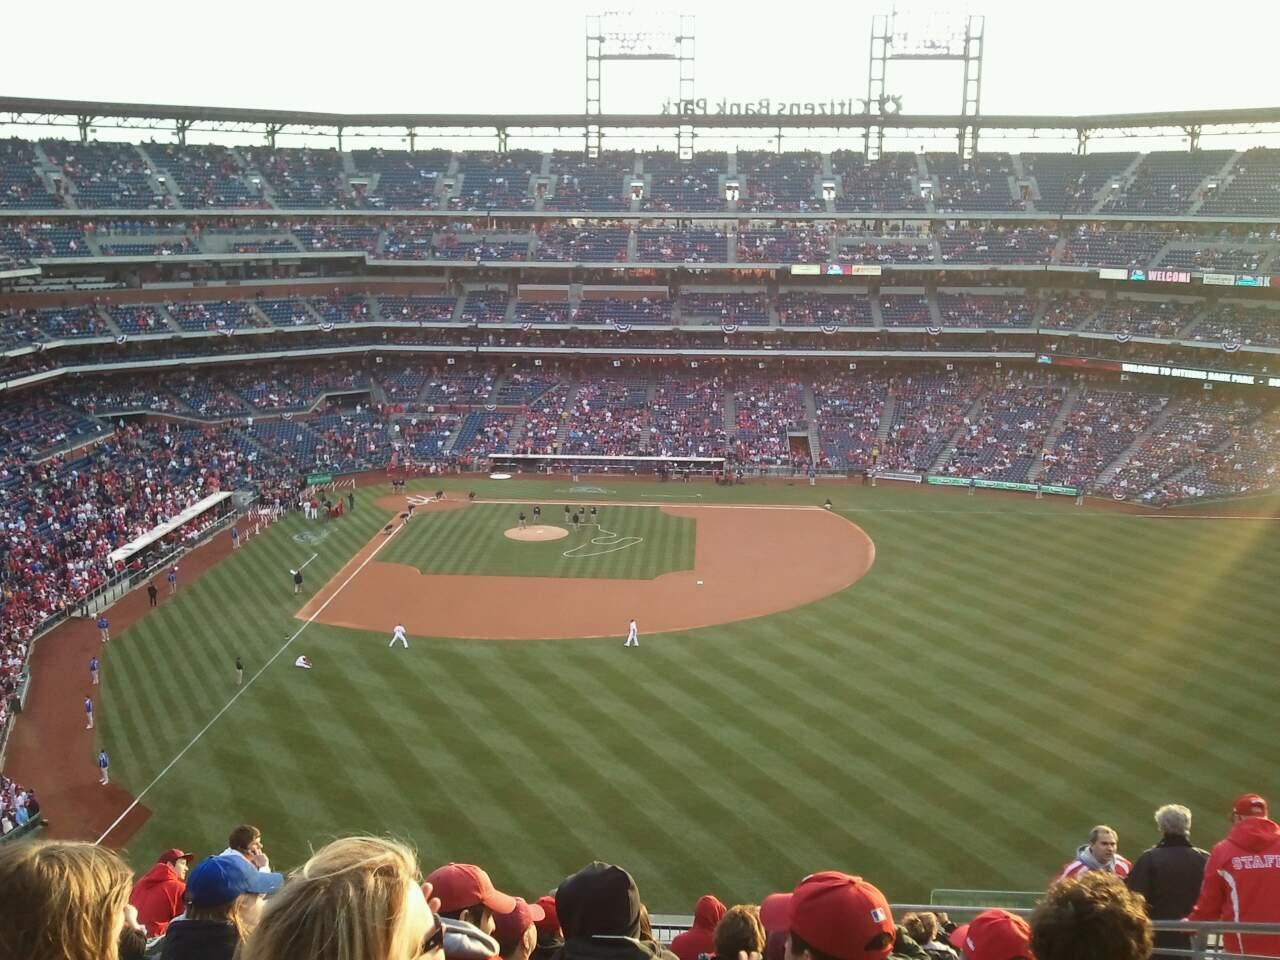 Citizens Bank Park Section 303 Row 15 Seat 6